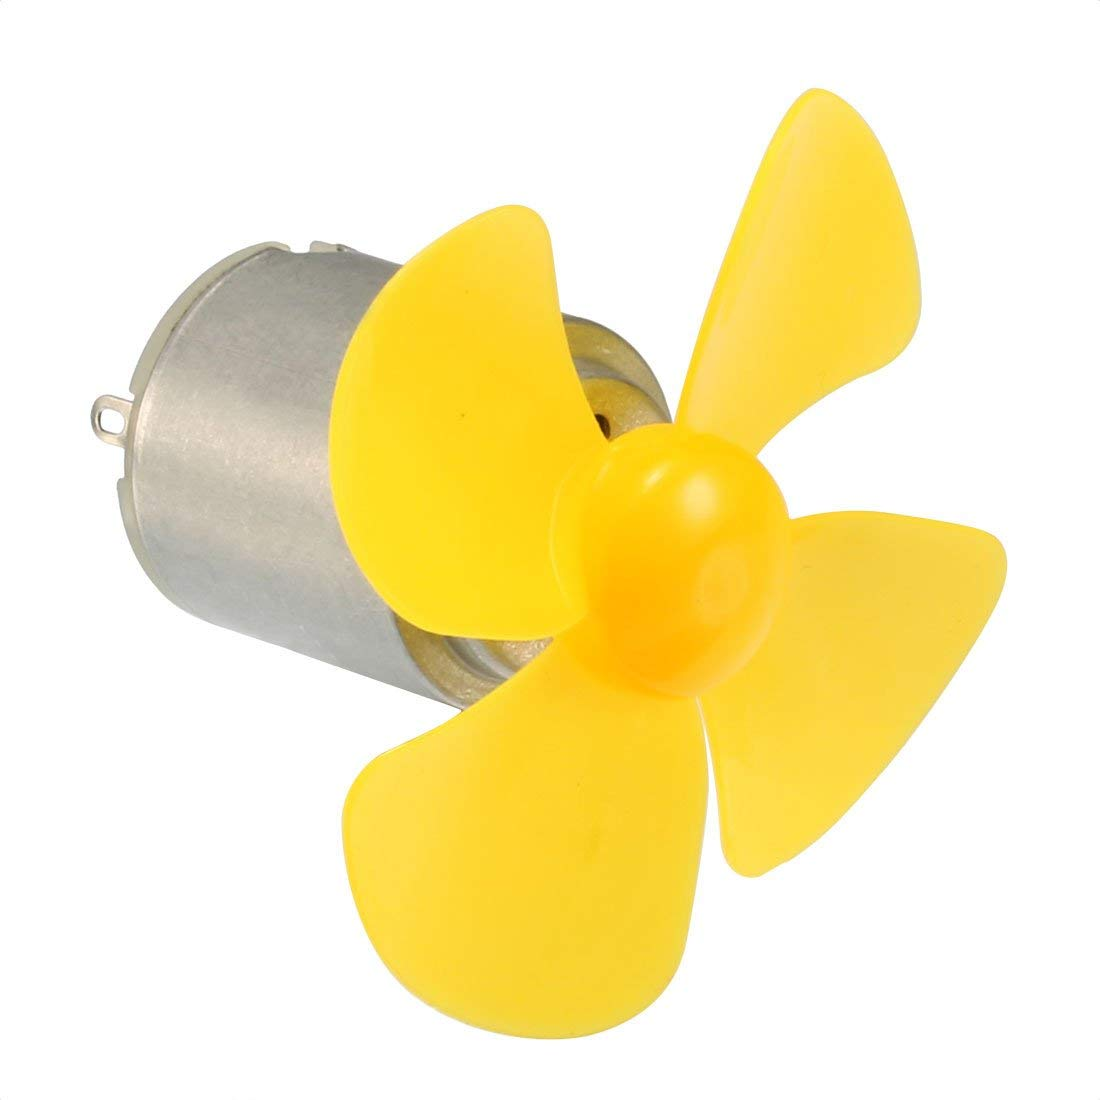 uxcell 1Set DC3v 0.18A 8000RPM+/-10% Motor with 60mm Dia 4 Vanes Yellow Propeller